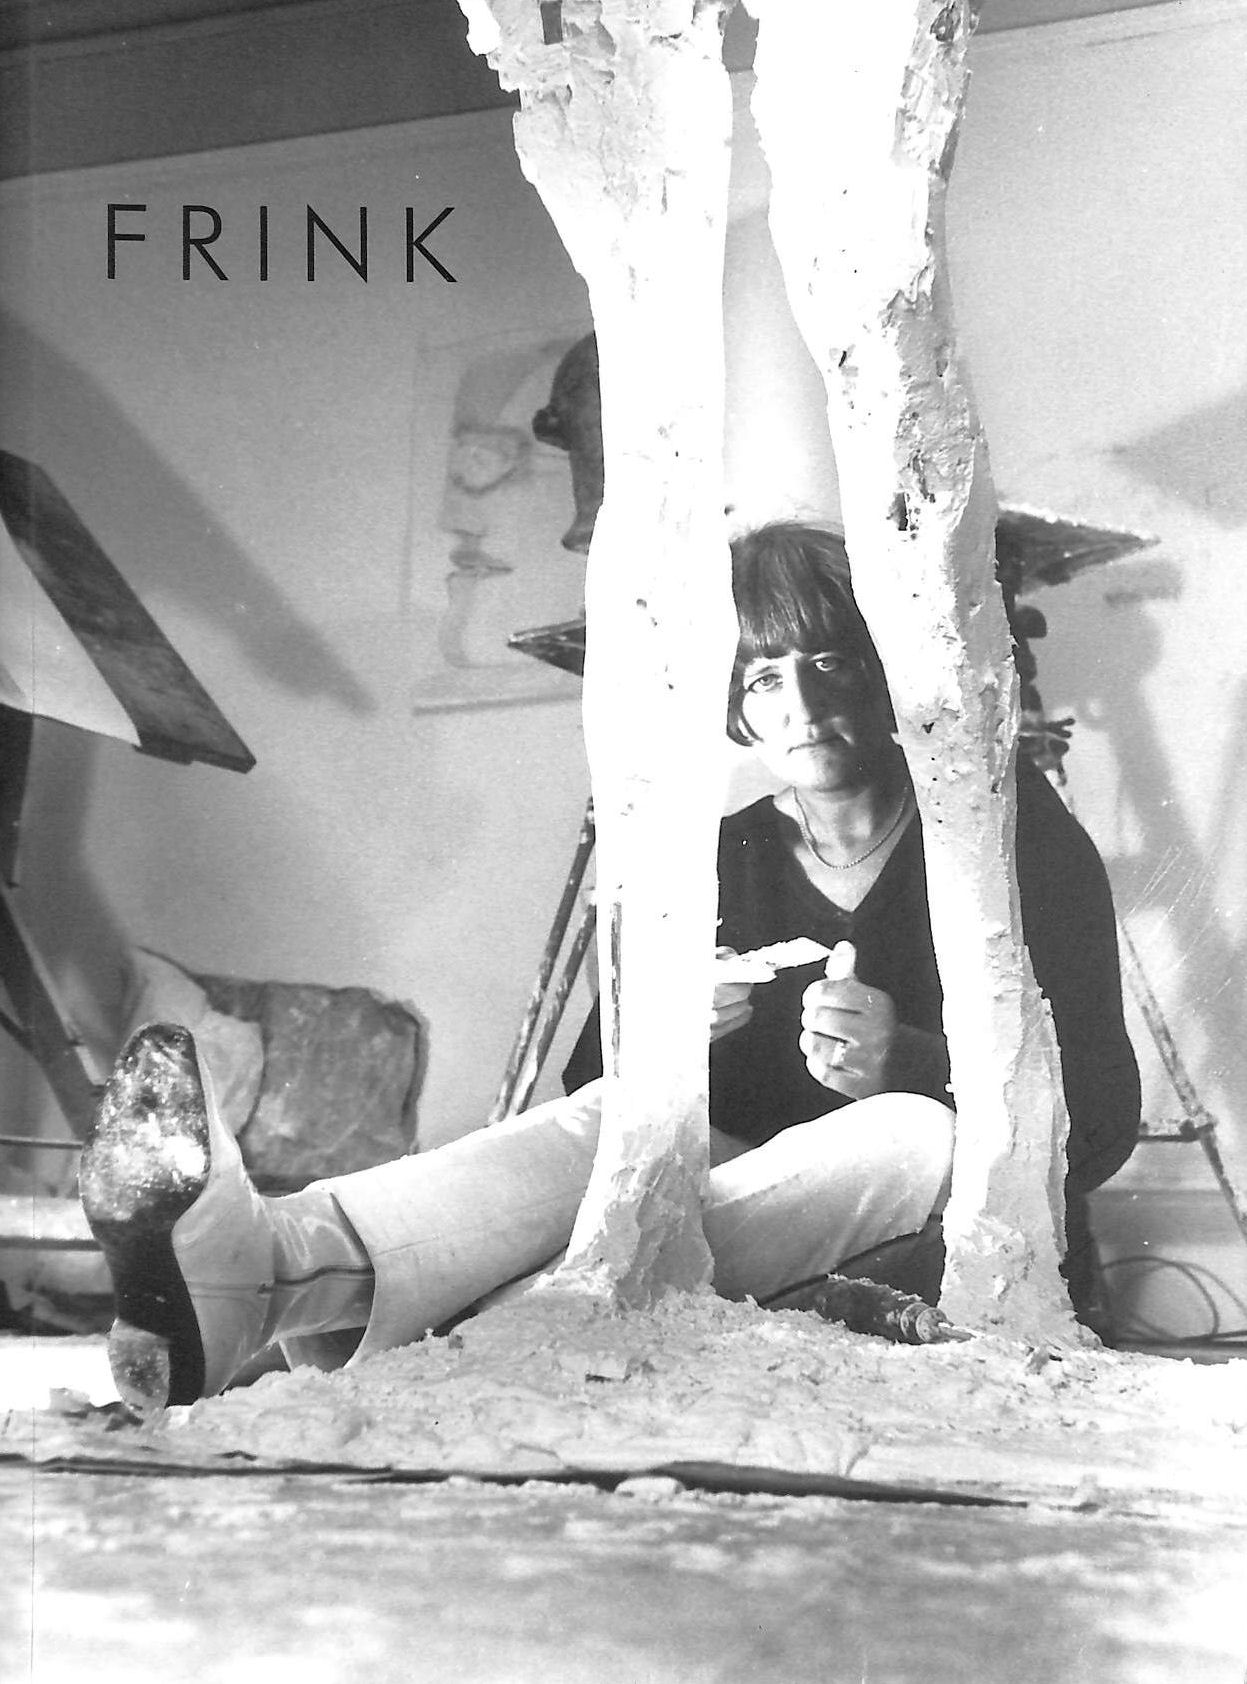 Elisabeth Frink Beaux Arts 21 May - 20 June 2015, Andrew Lambirth; Andrew Lambirth [Contributor]